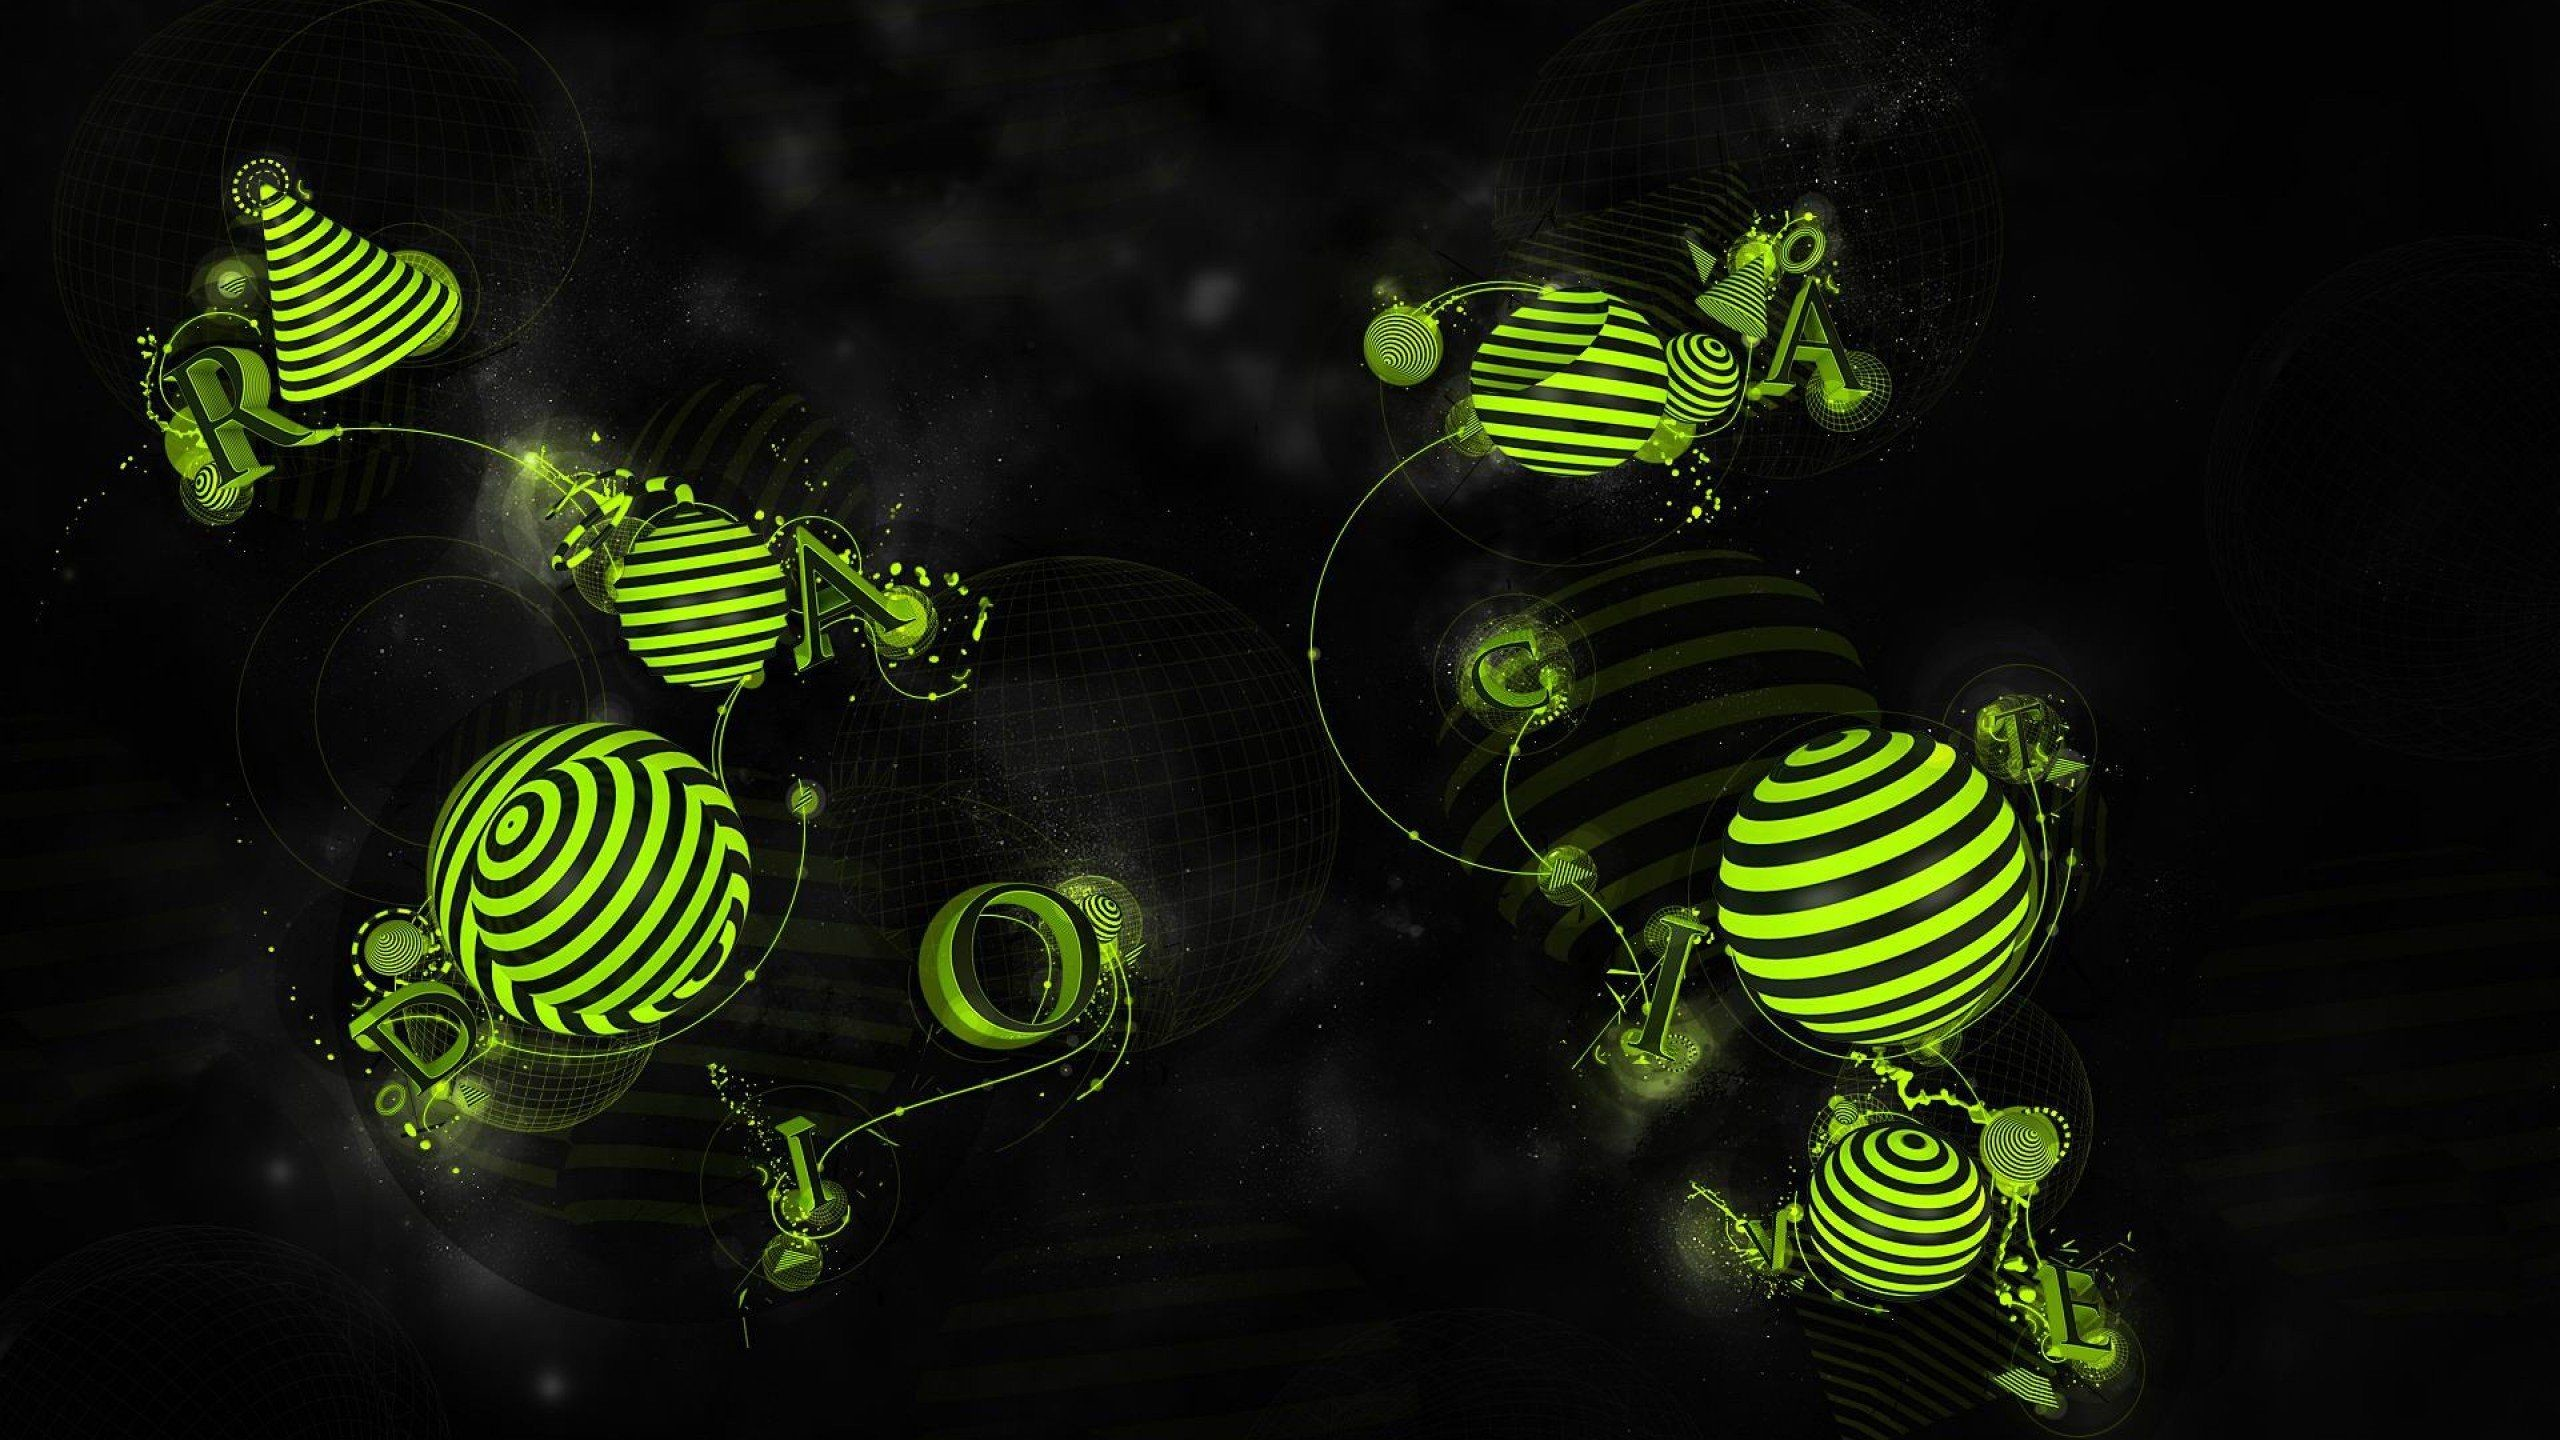 Res: 2560x1440, warning Signs Radioactive Wallpapers HD Desktop and Mobile | HD Wallpapers  | Pinterest | Wallpaper and Hd desktop